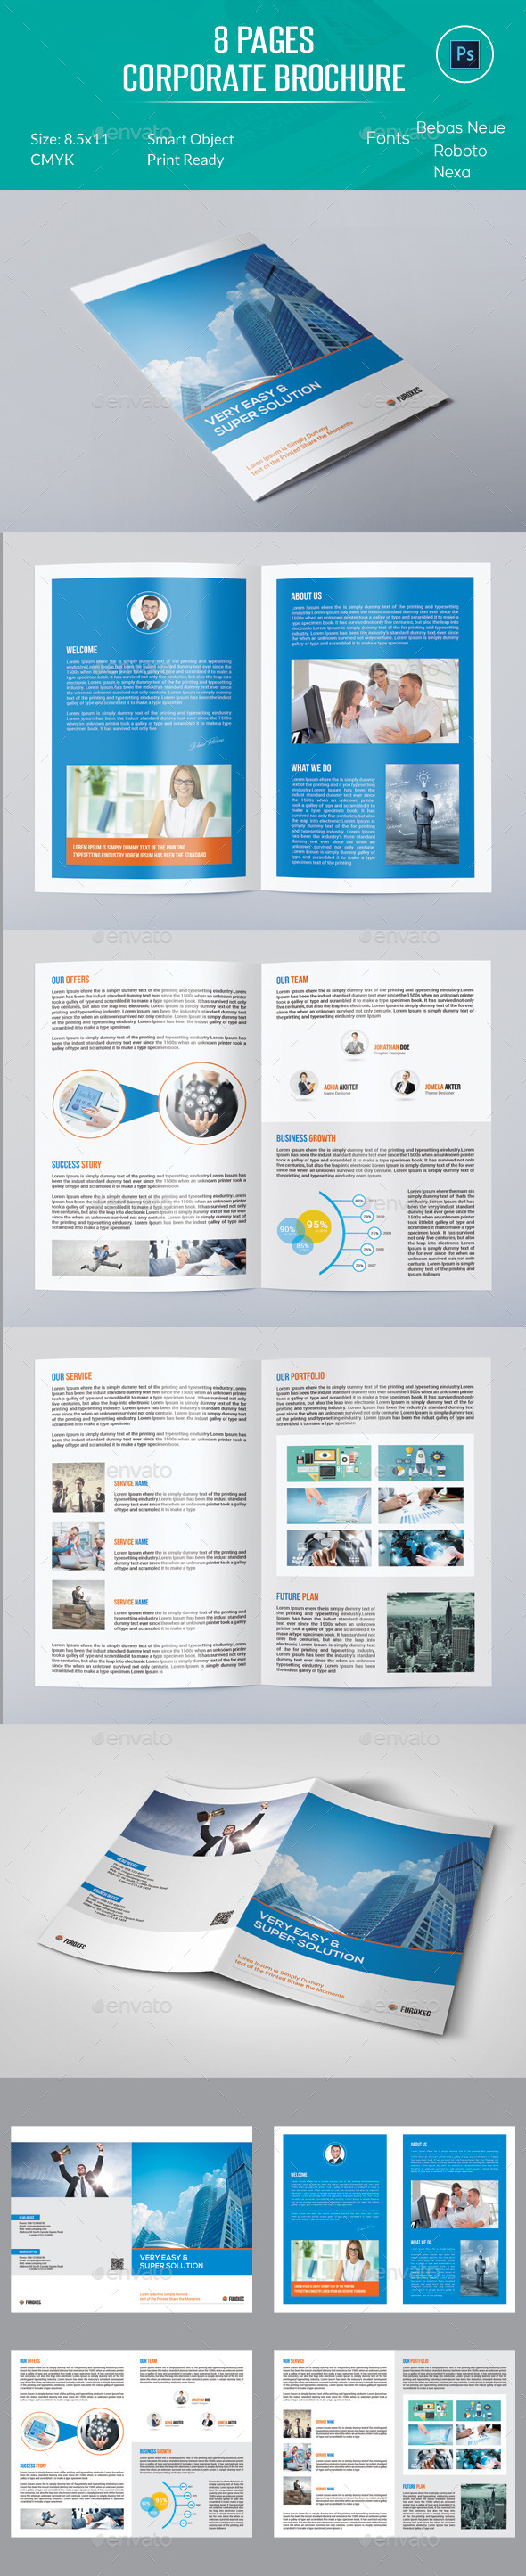 8 Pages Corporate Brochure - Corporate Brochures